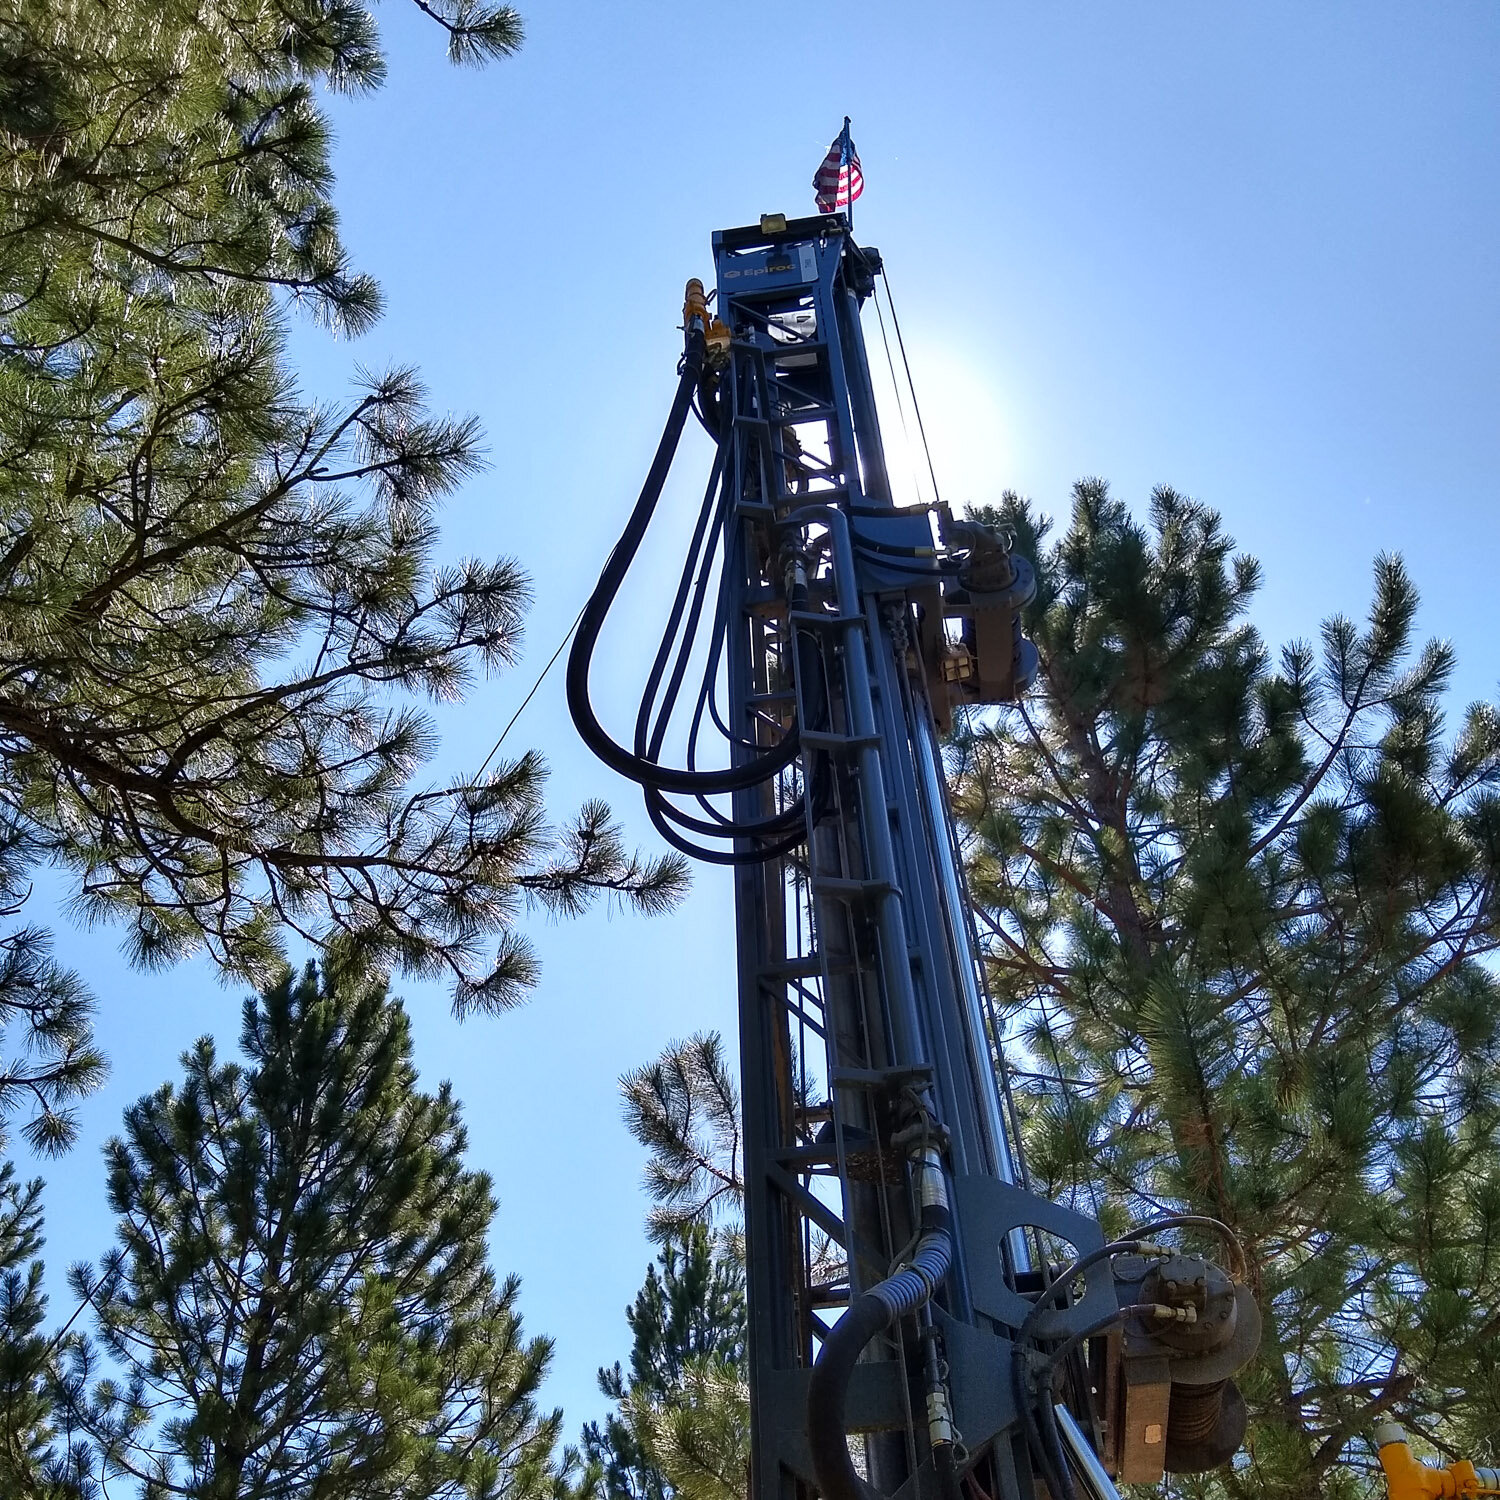 When the boom arm is up, it is approximately 30 feet tall.